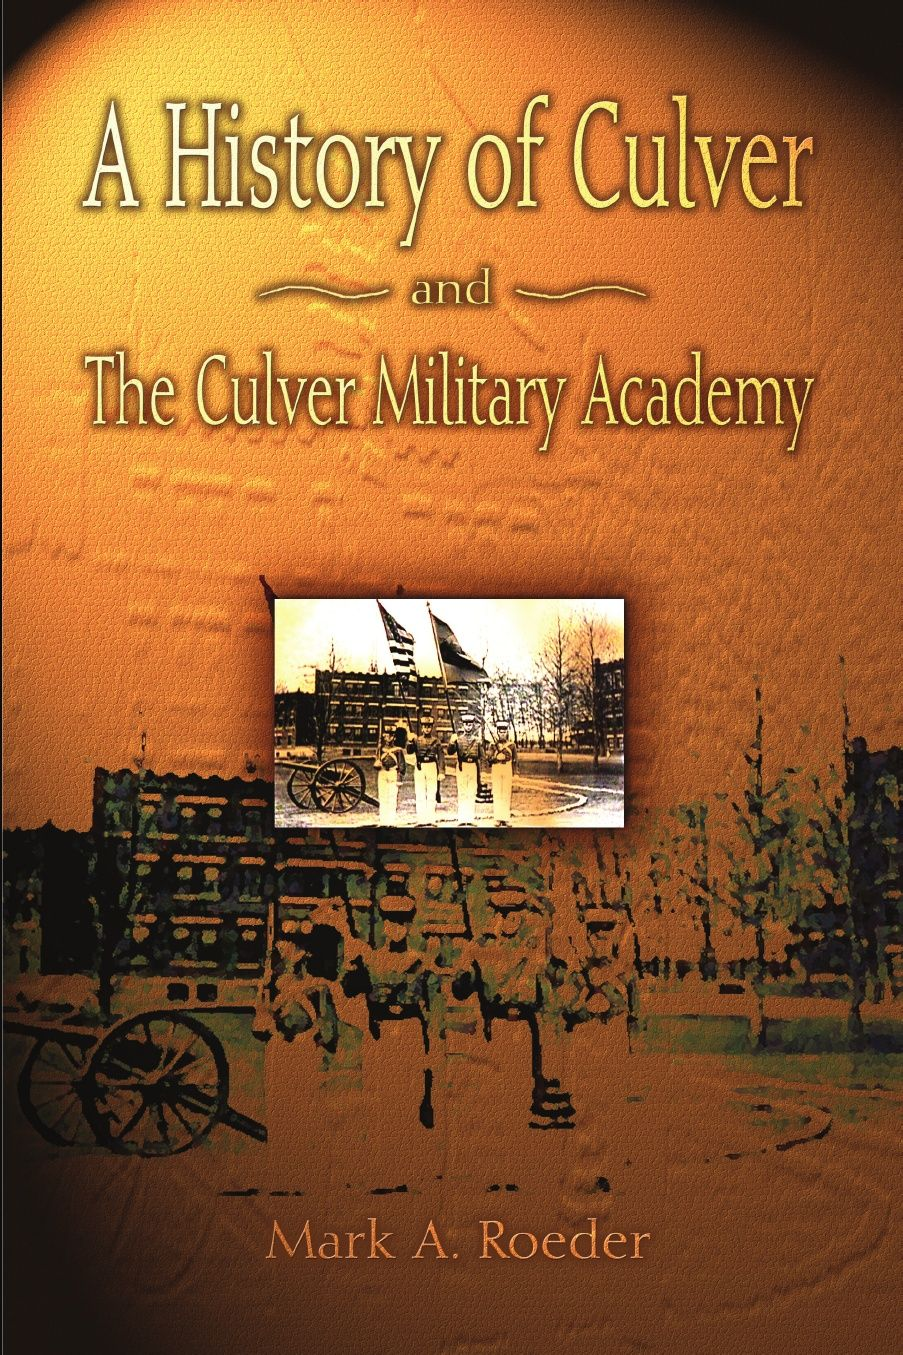 A History Of Culver And The Culver Military Academy